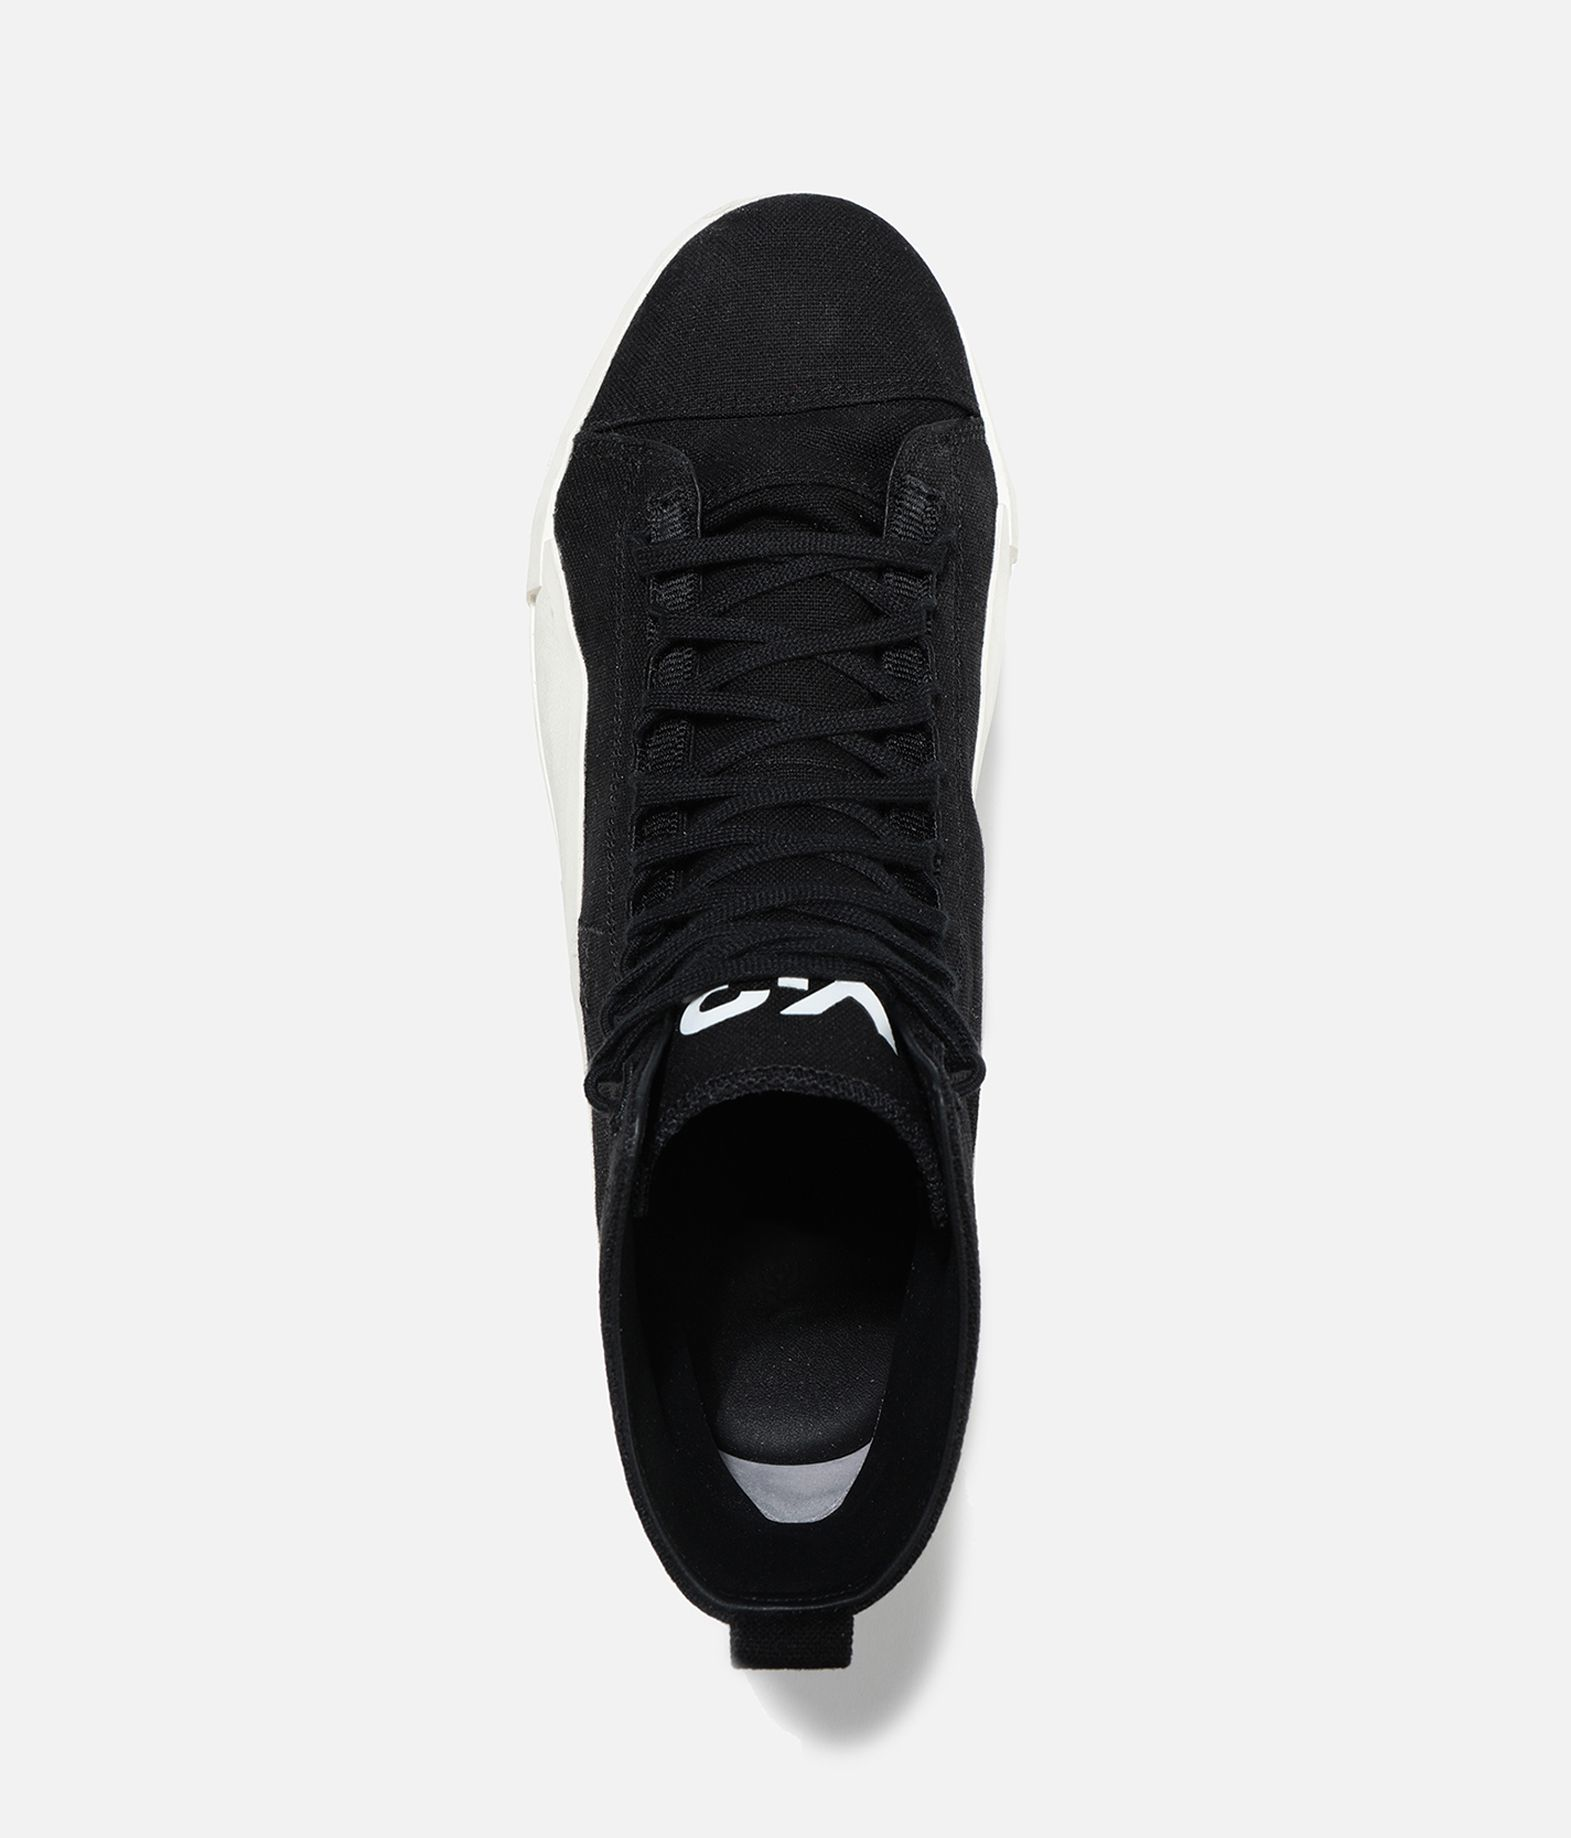 Y-3 Y-3 Yuben Mid High-top sneakers E c